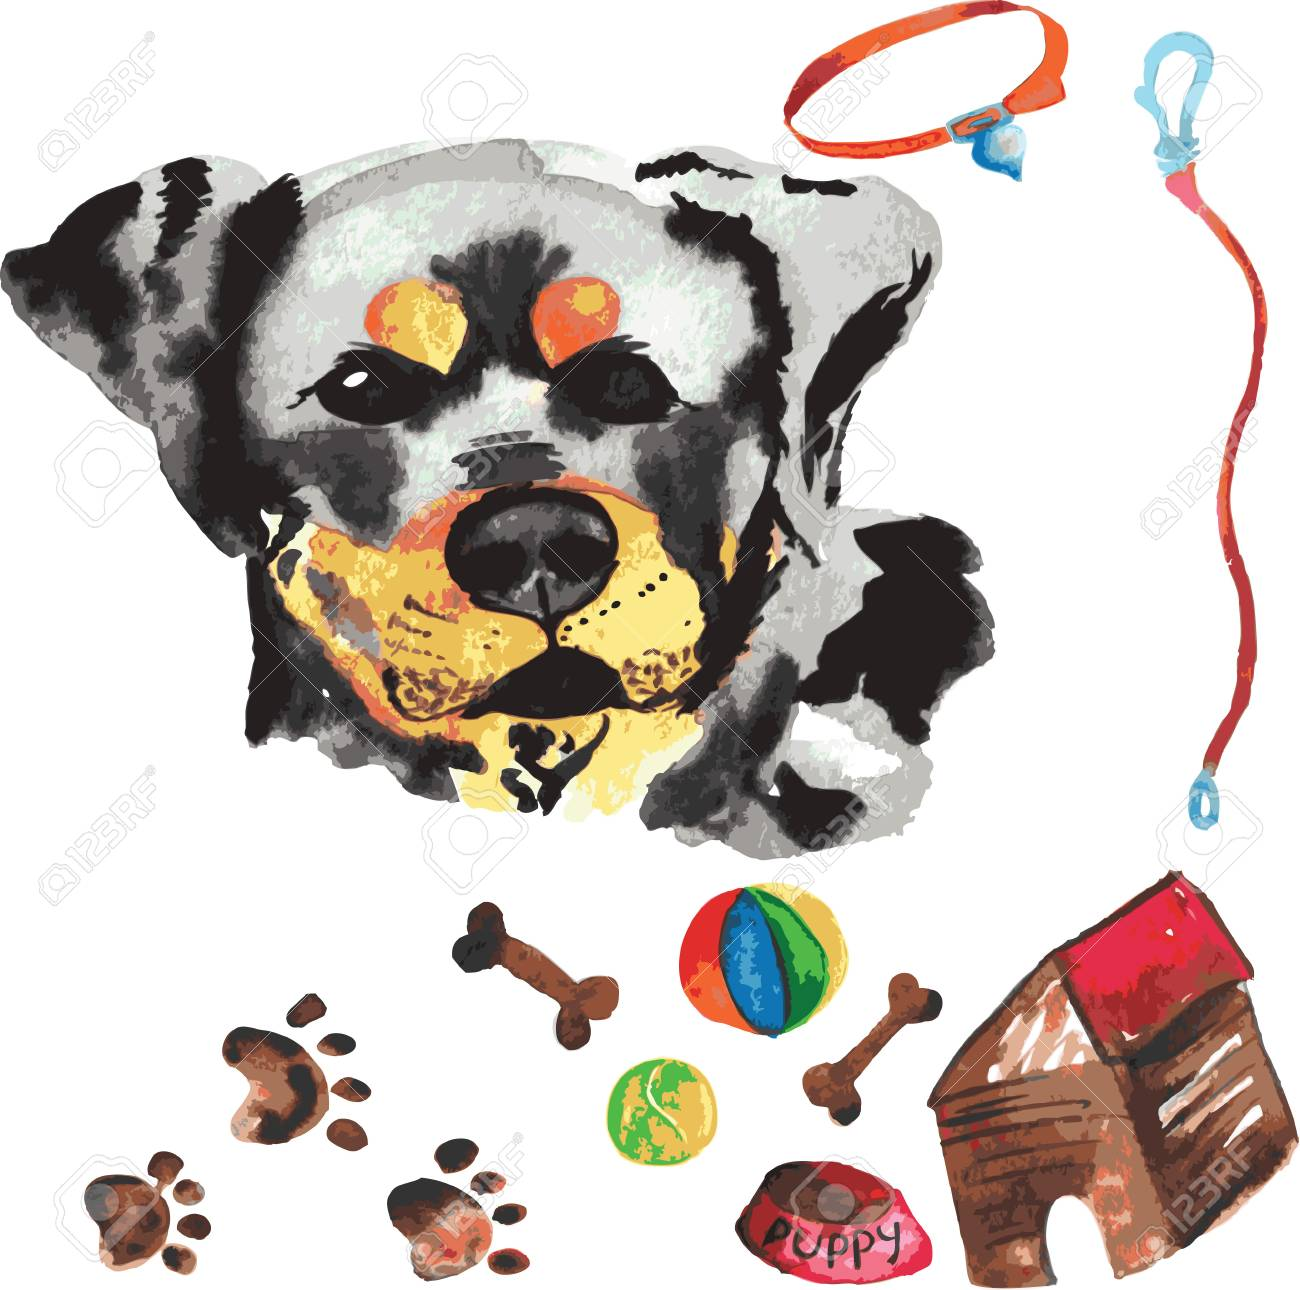 Veterinary Kit Comprising Rottweiler And Accessories For Dogs